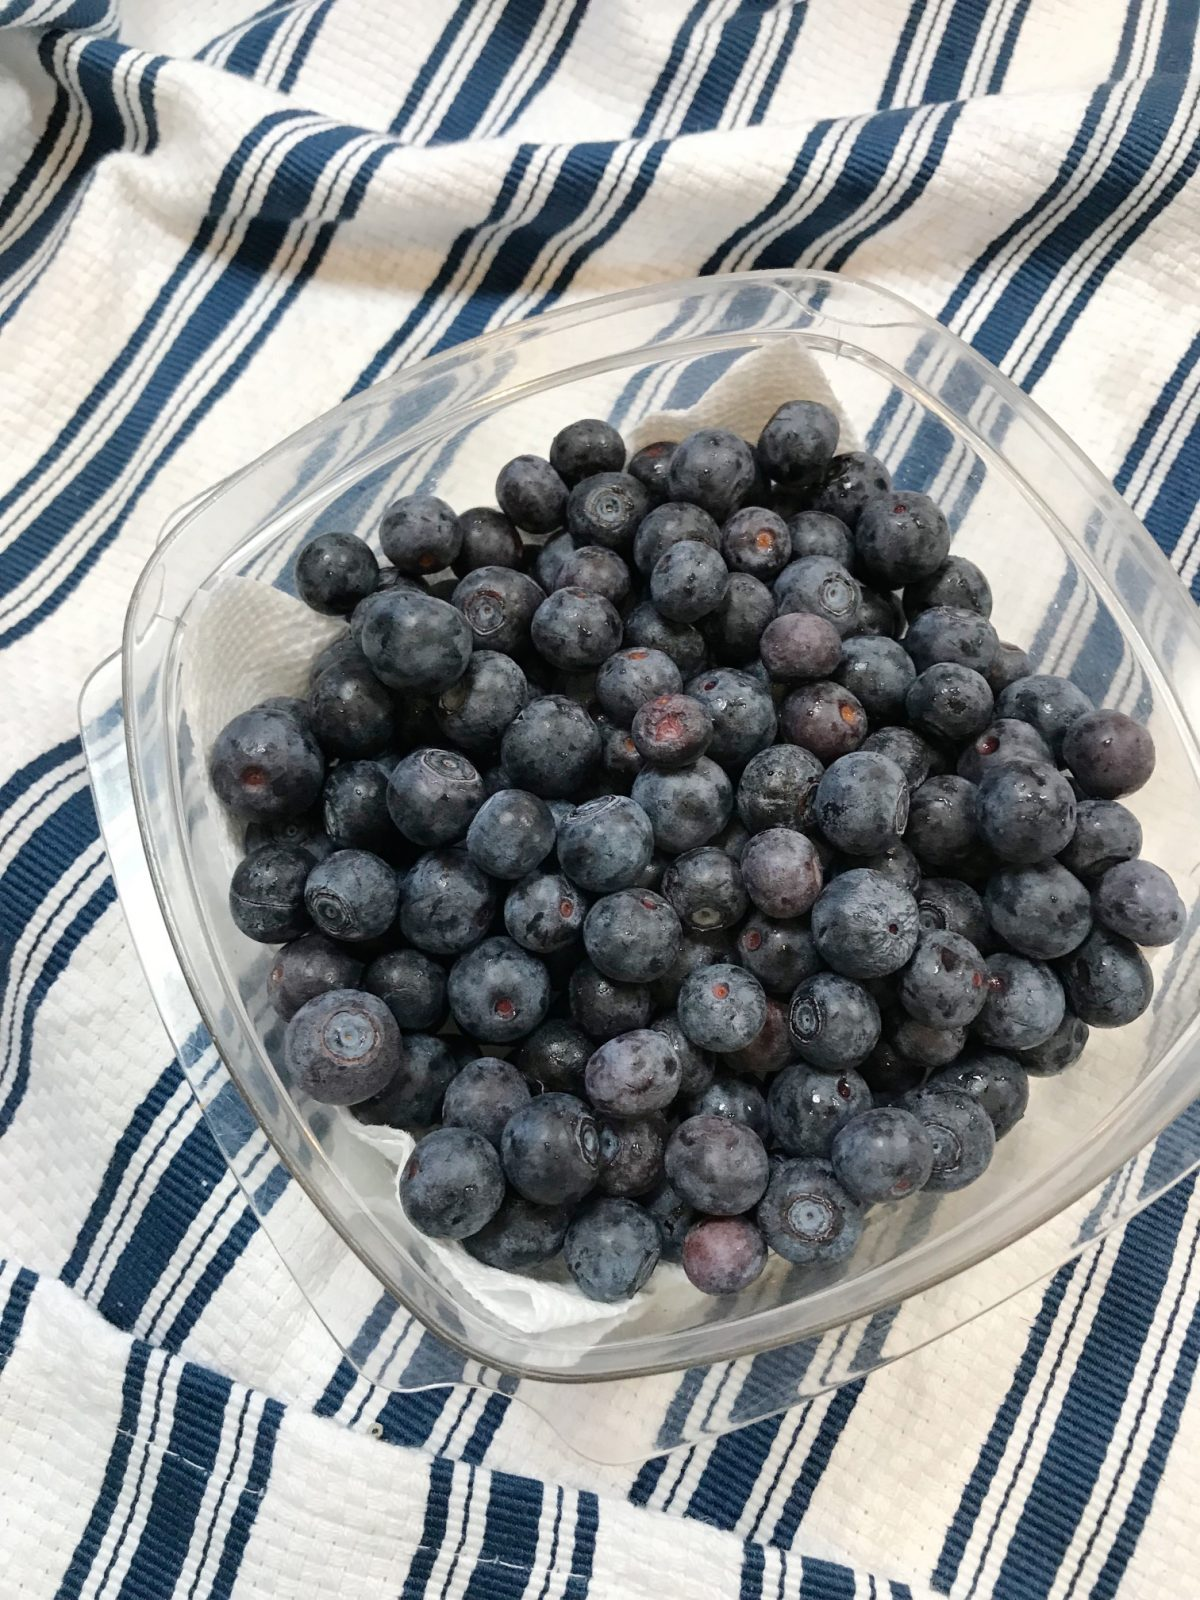 How to keep blueberries fresh